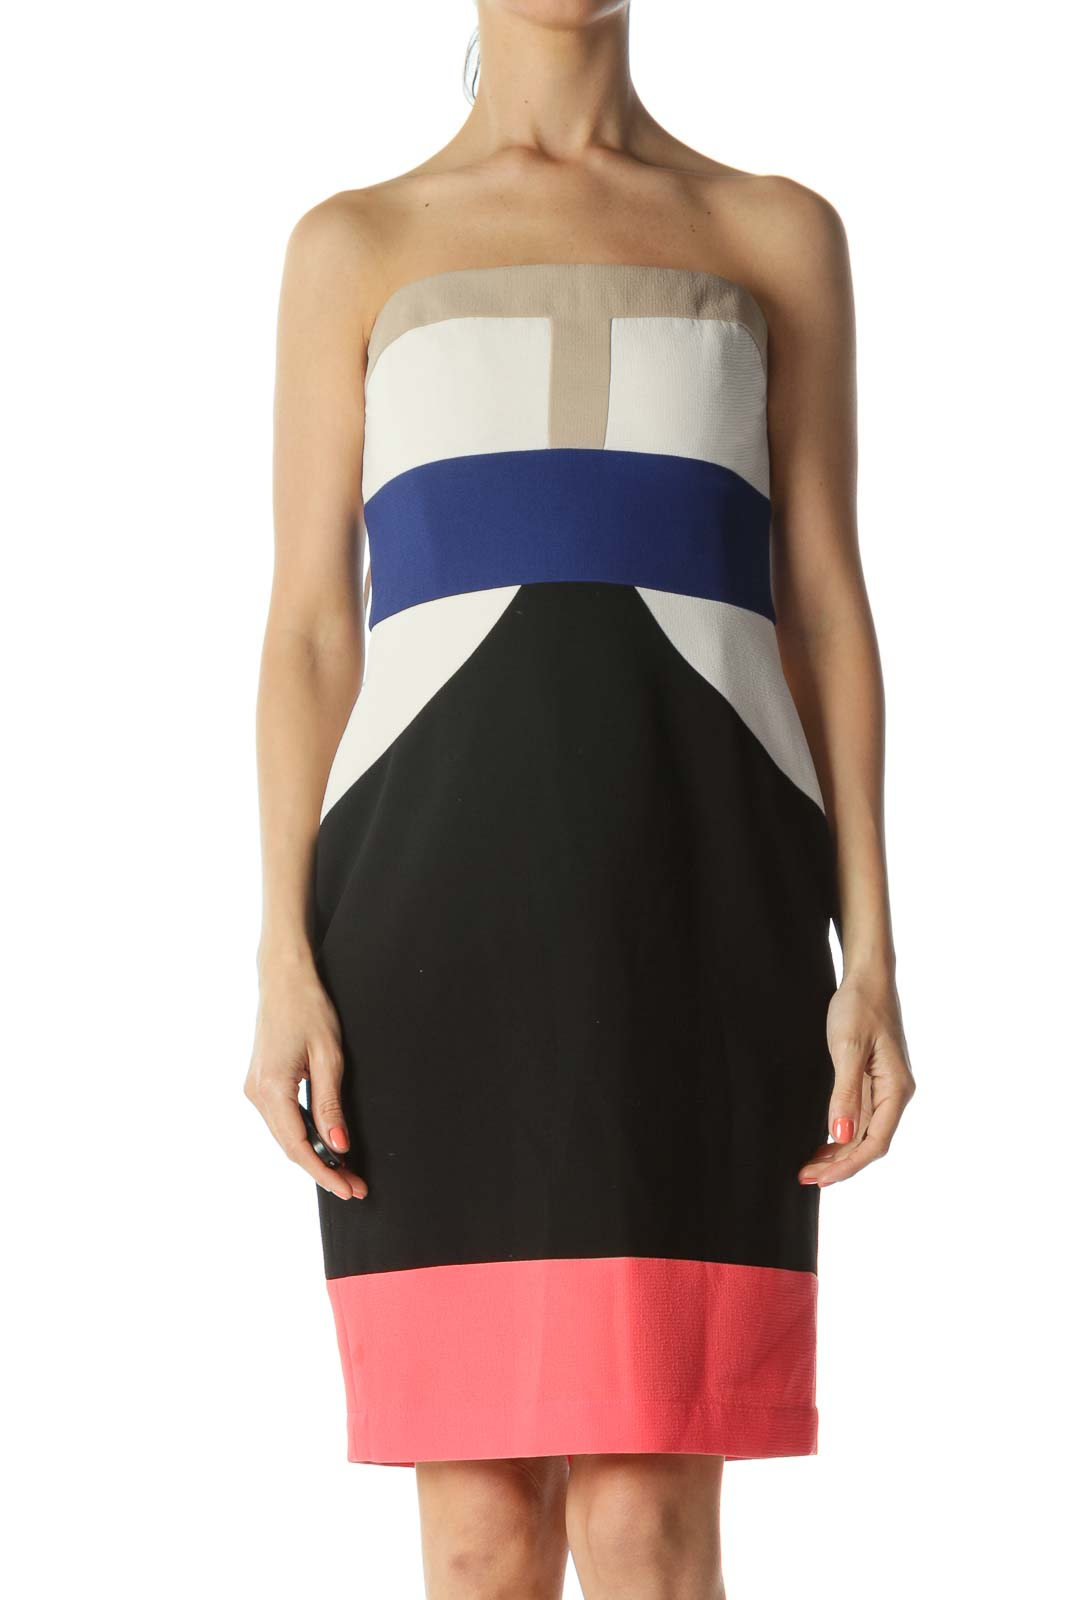 Multicolor Color-Block Strapless Cocktail Dress with Inside Structure and Bust-Adjustable Hooks